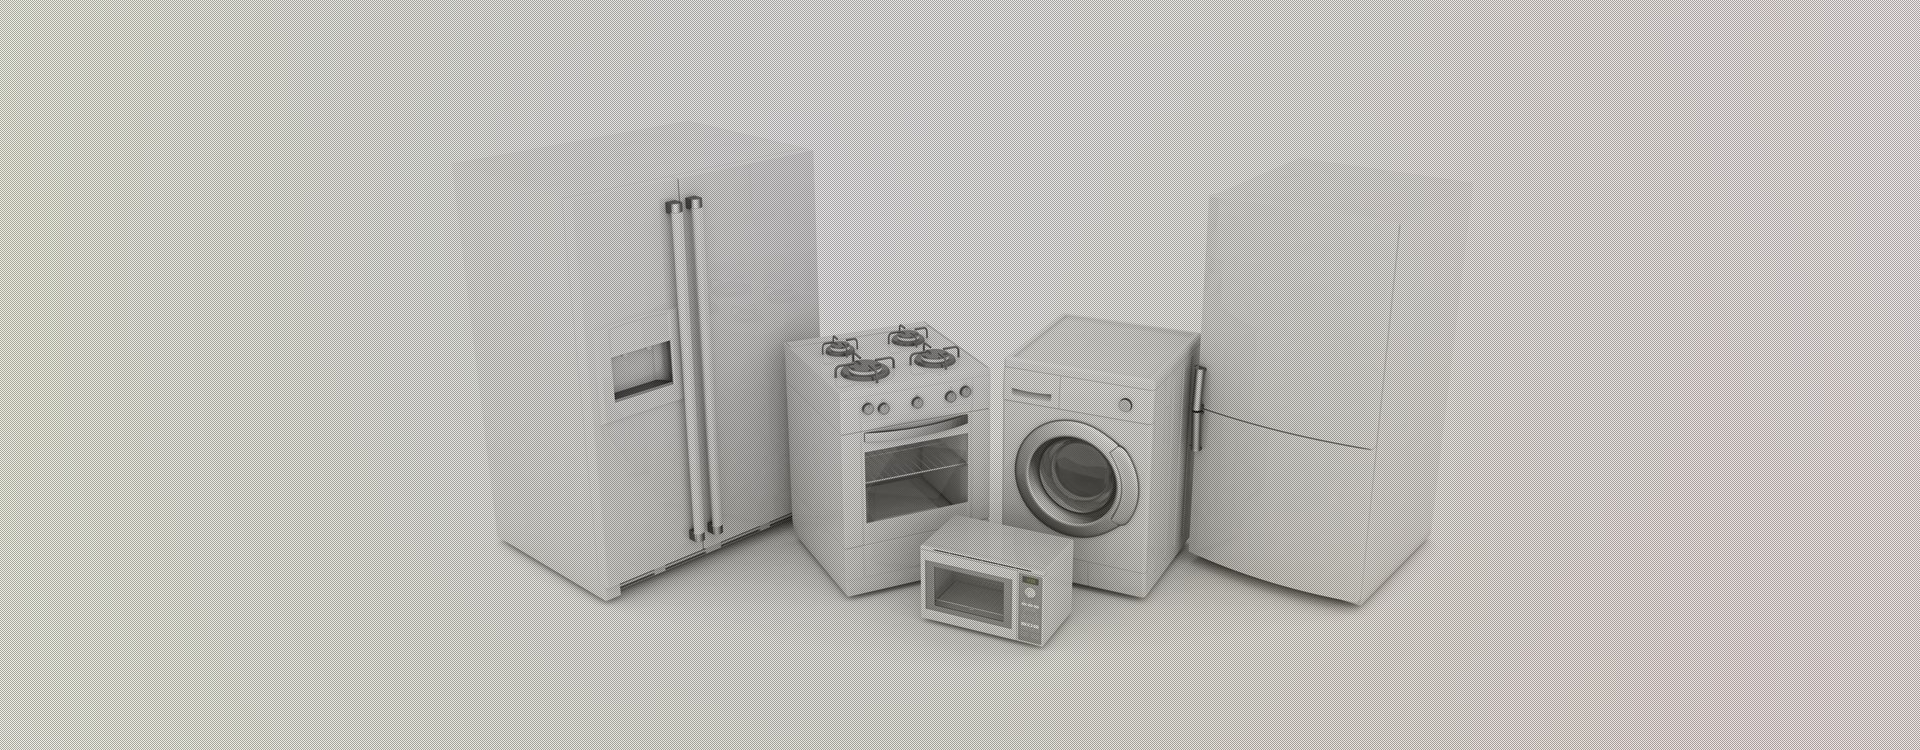 Home Appliance Service Appliance Engineers At Advanced Domestic Services Ltd